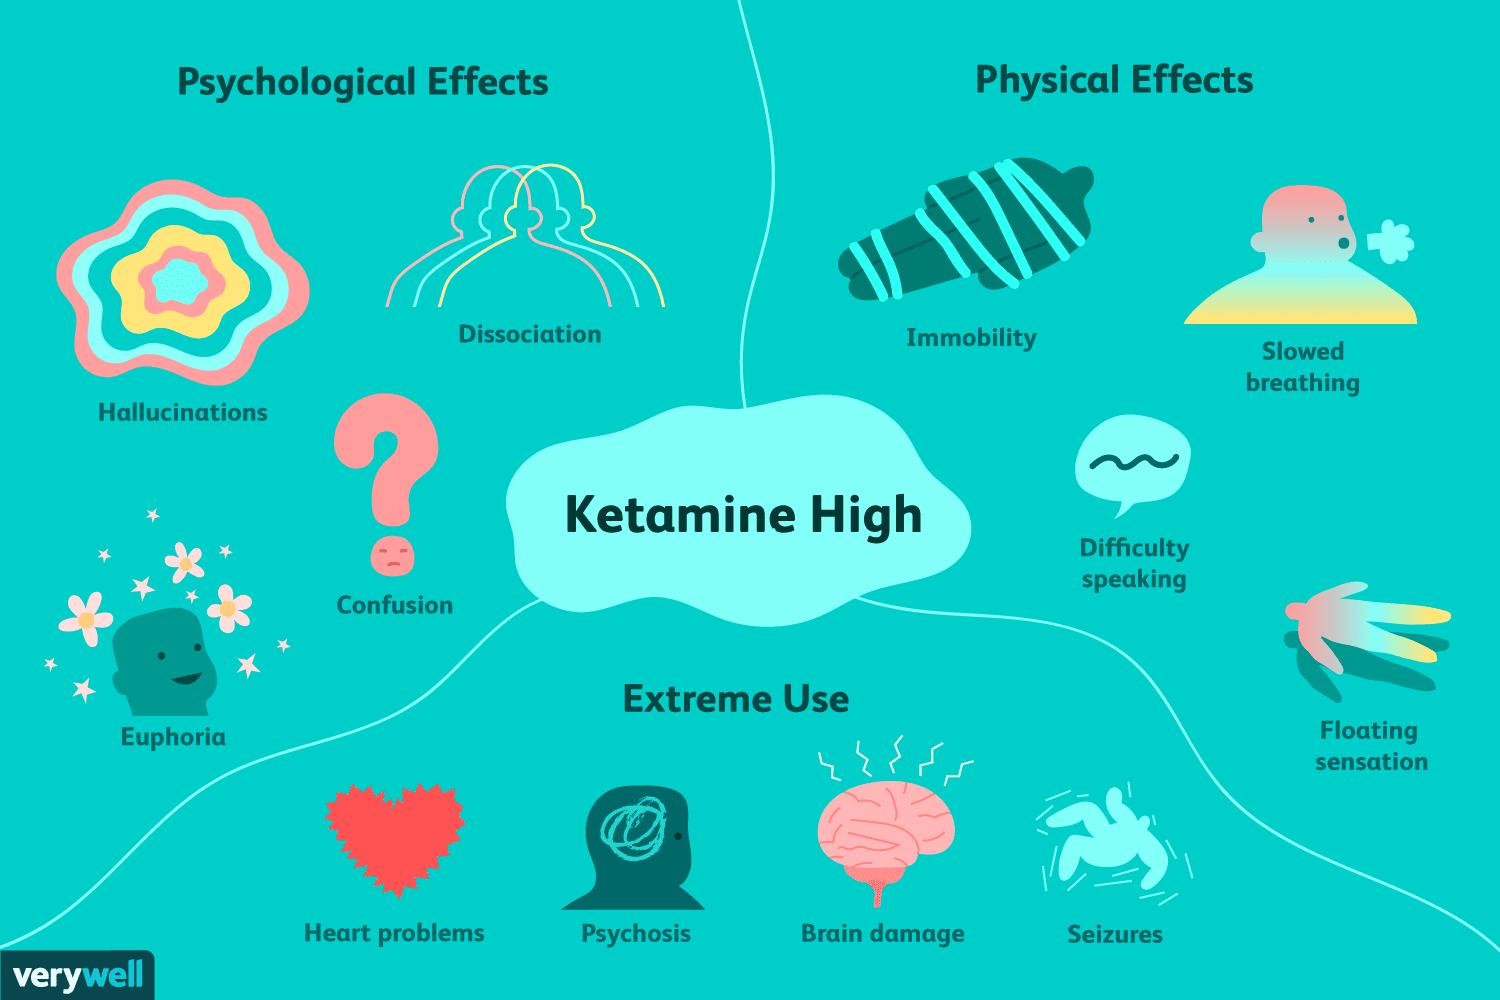 K-Hole and the Effects of Ketamine